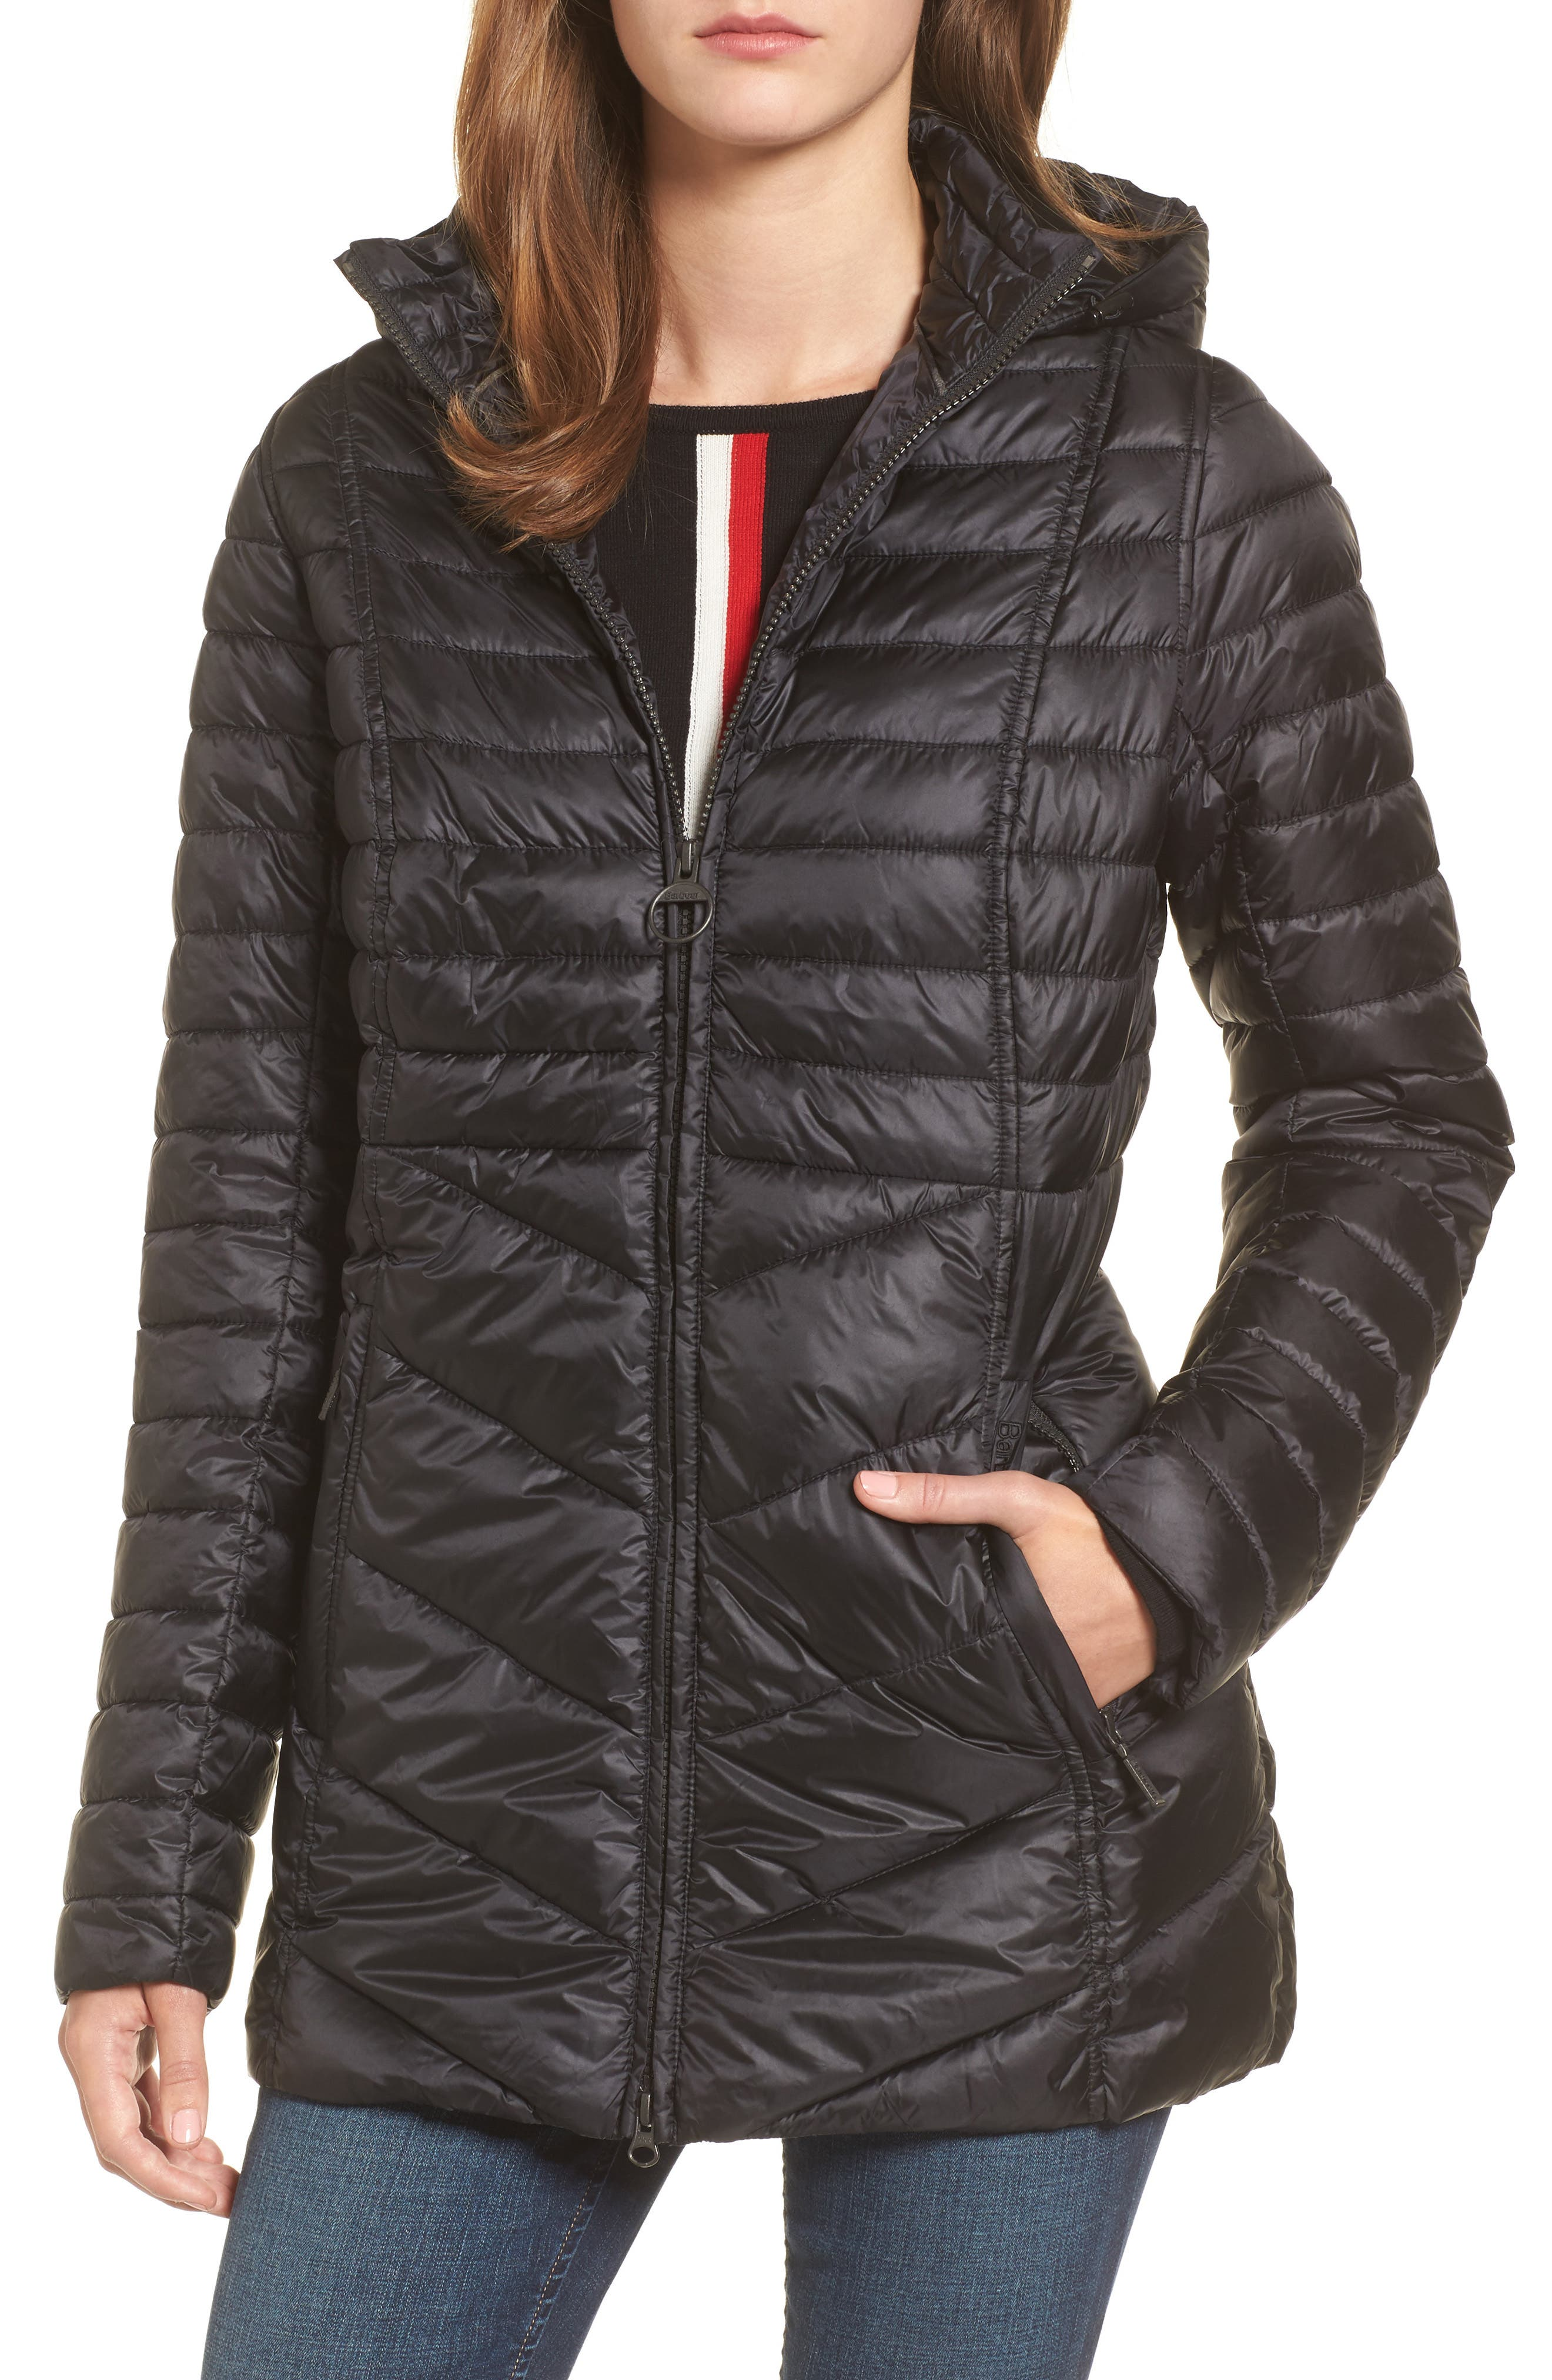 Linton Hooded Water Resistant Quilted Jacket,                         Main,                         color, 001